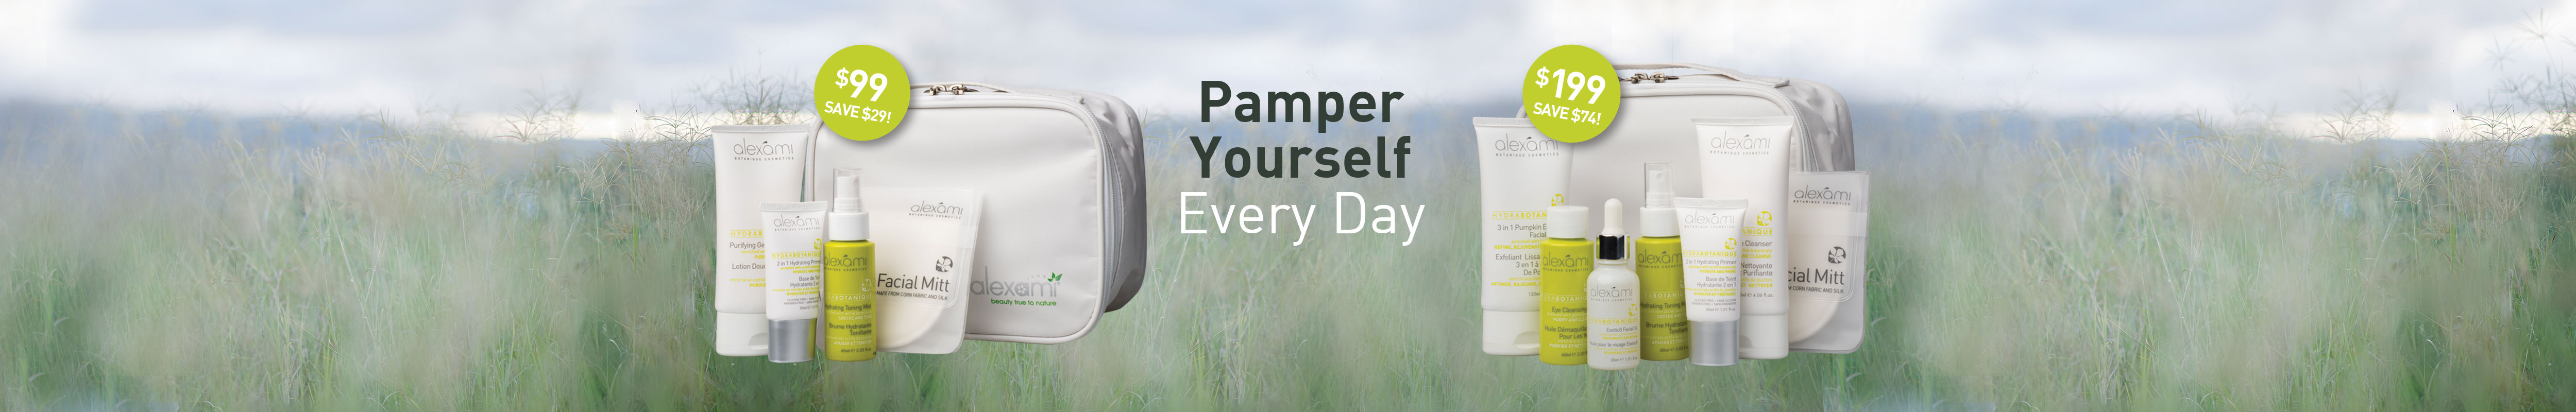 pamper yourself every day with Alexami